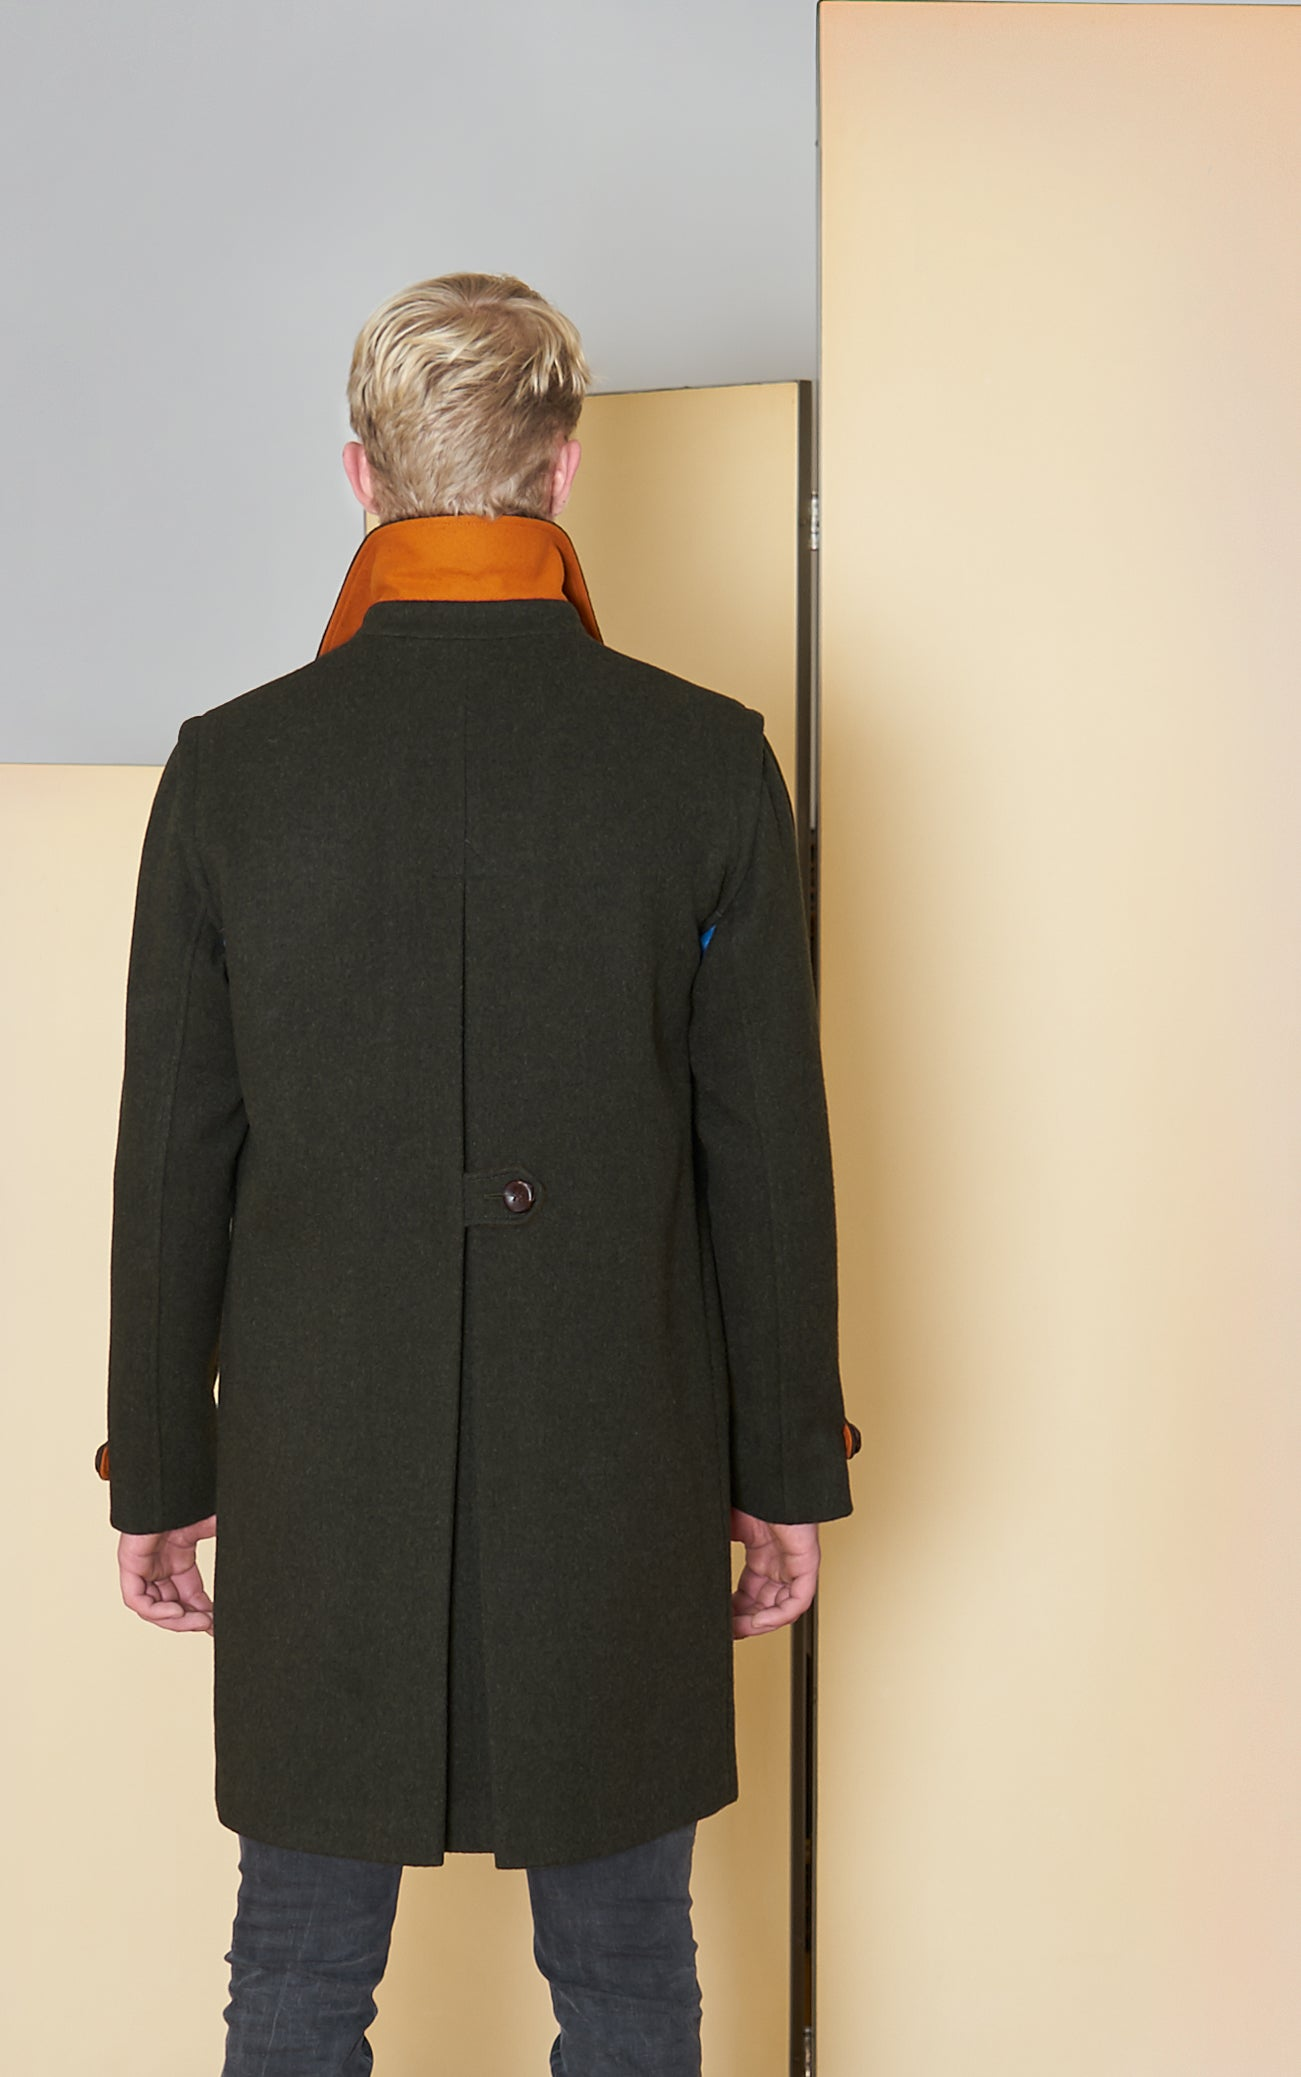 Classic Loden Coat in 100% extra-fine merino wool and woven leather buttons.